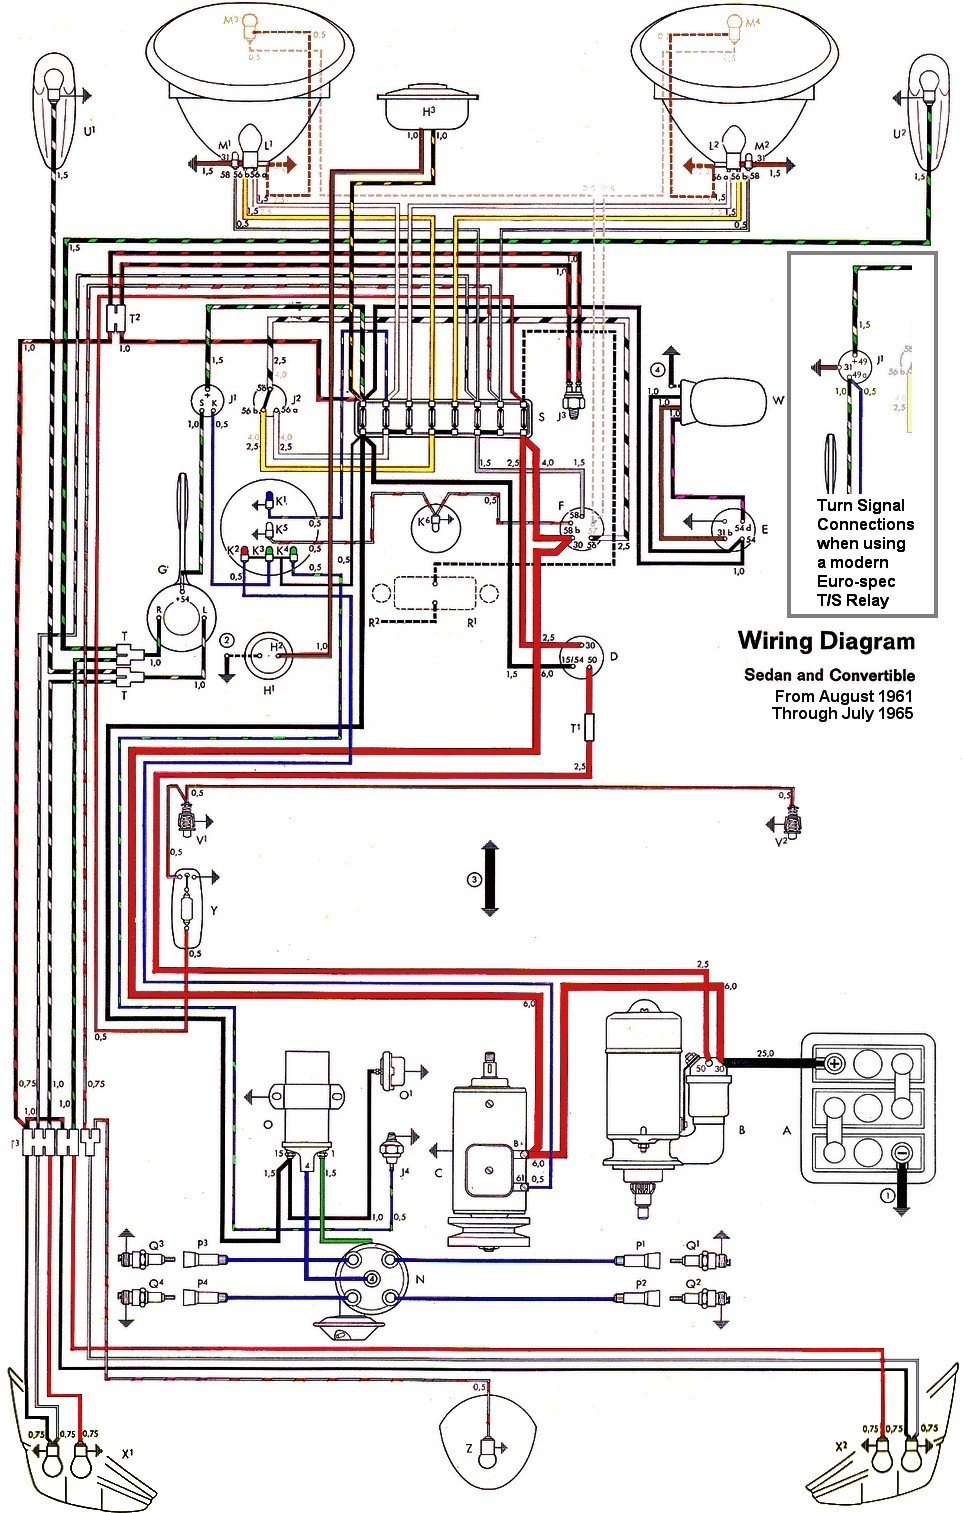 thesamba com type 1 wiring diagrams rh thesamba com 1970 vw ignition wiring diagram 1970 vw beetle wiring diagram